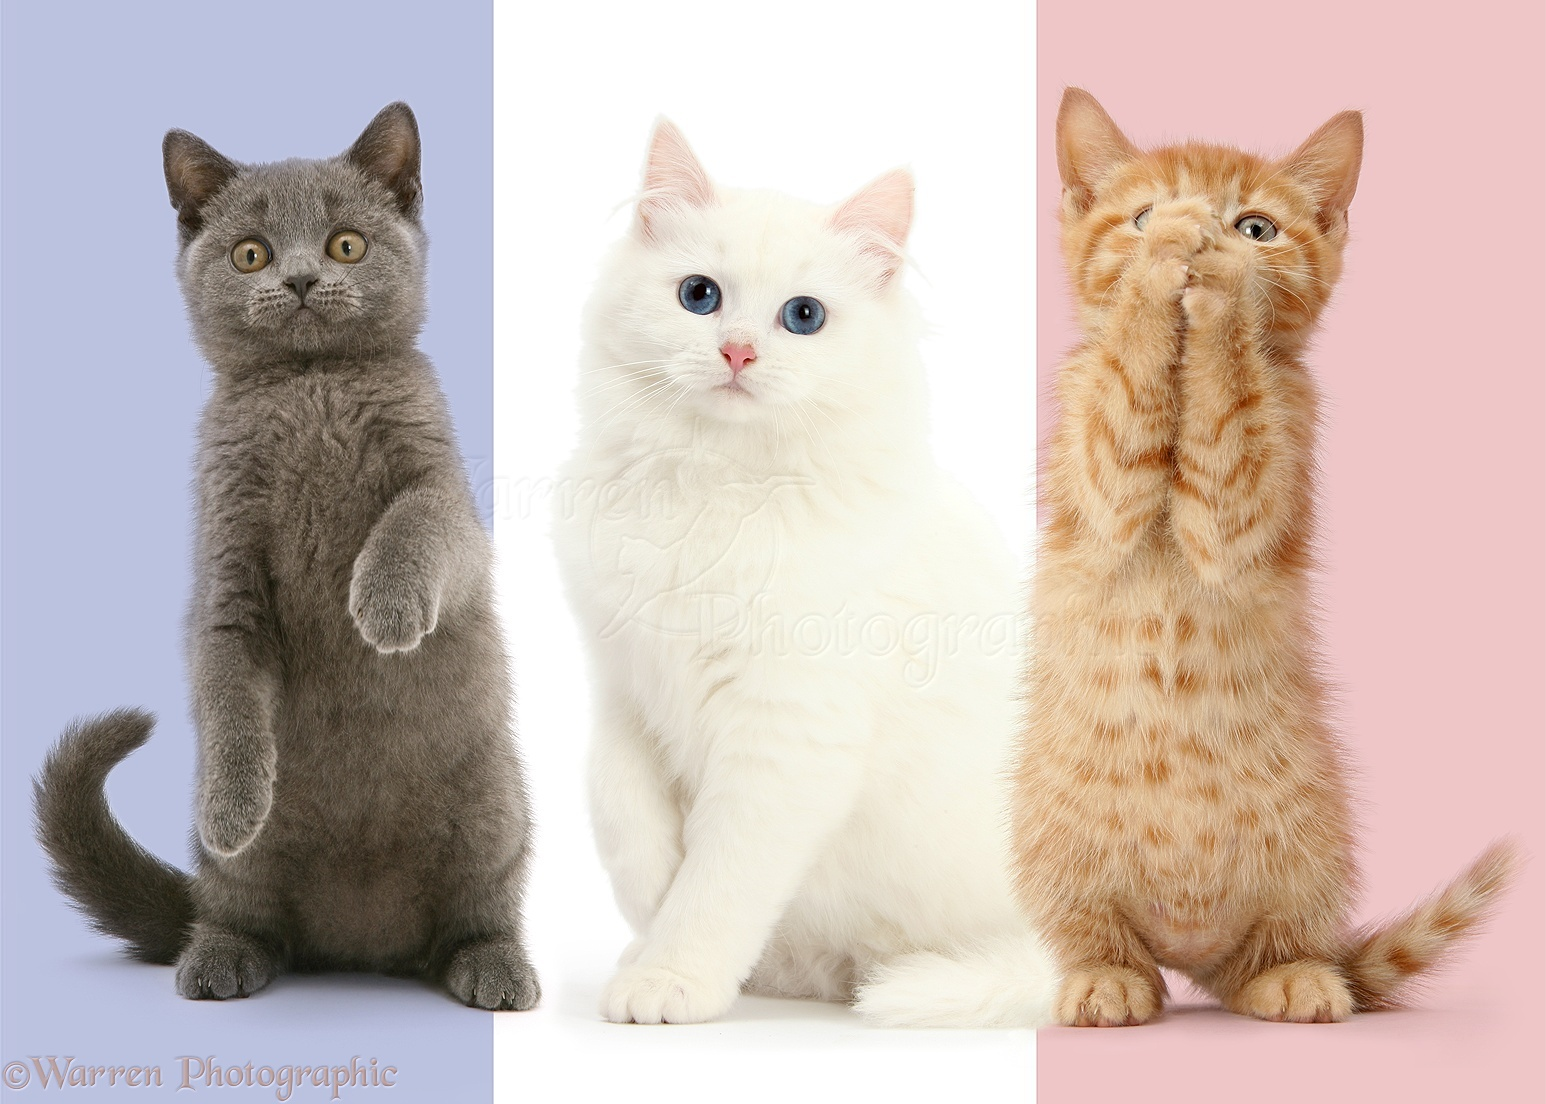 Tricolour French flag cats photo WP44525